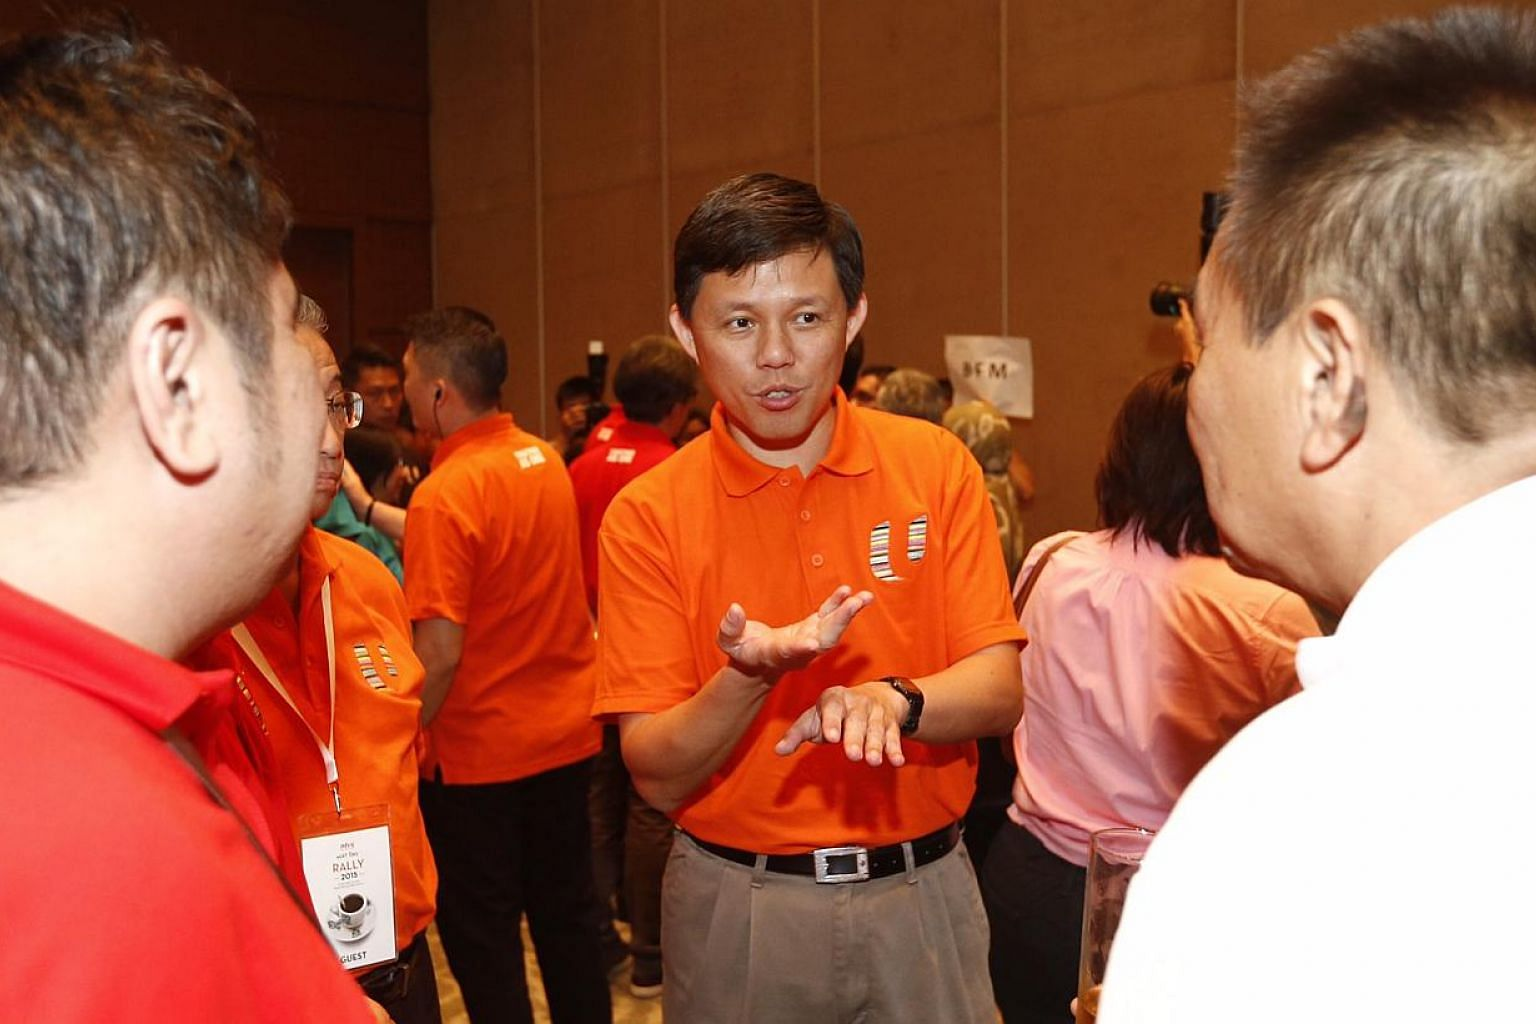 Mr Chan Chun Sing, who will be the new labour chief, mingling after the May Day celebration. -- ST PHOTO: KEVIN LIM